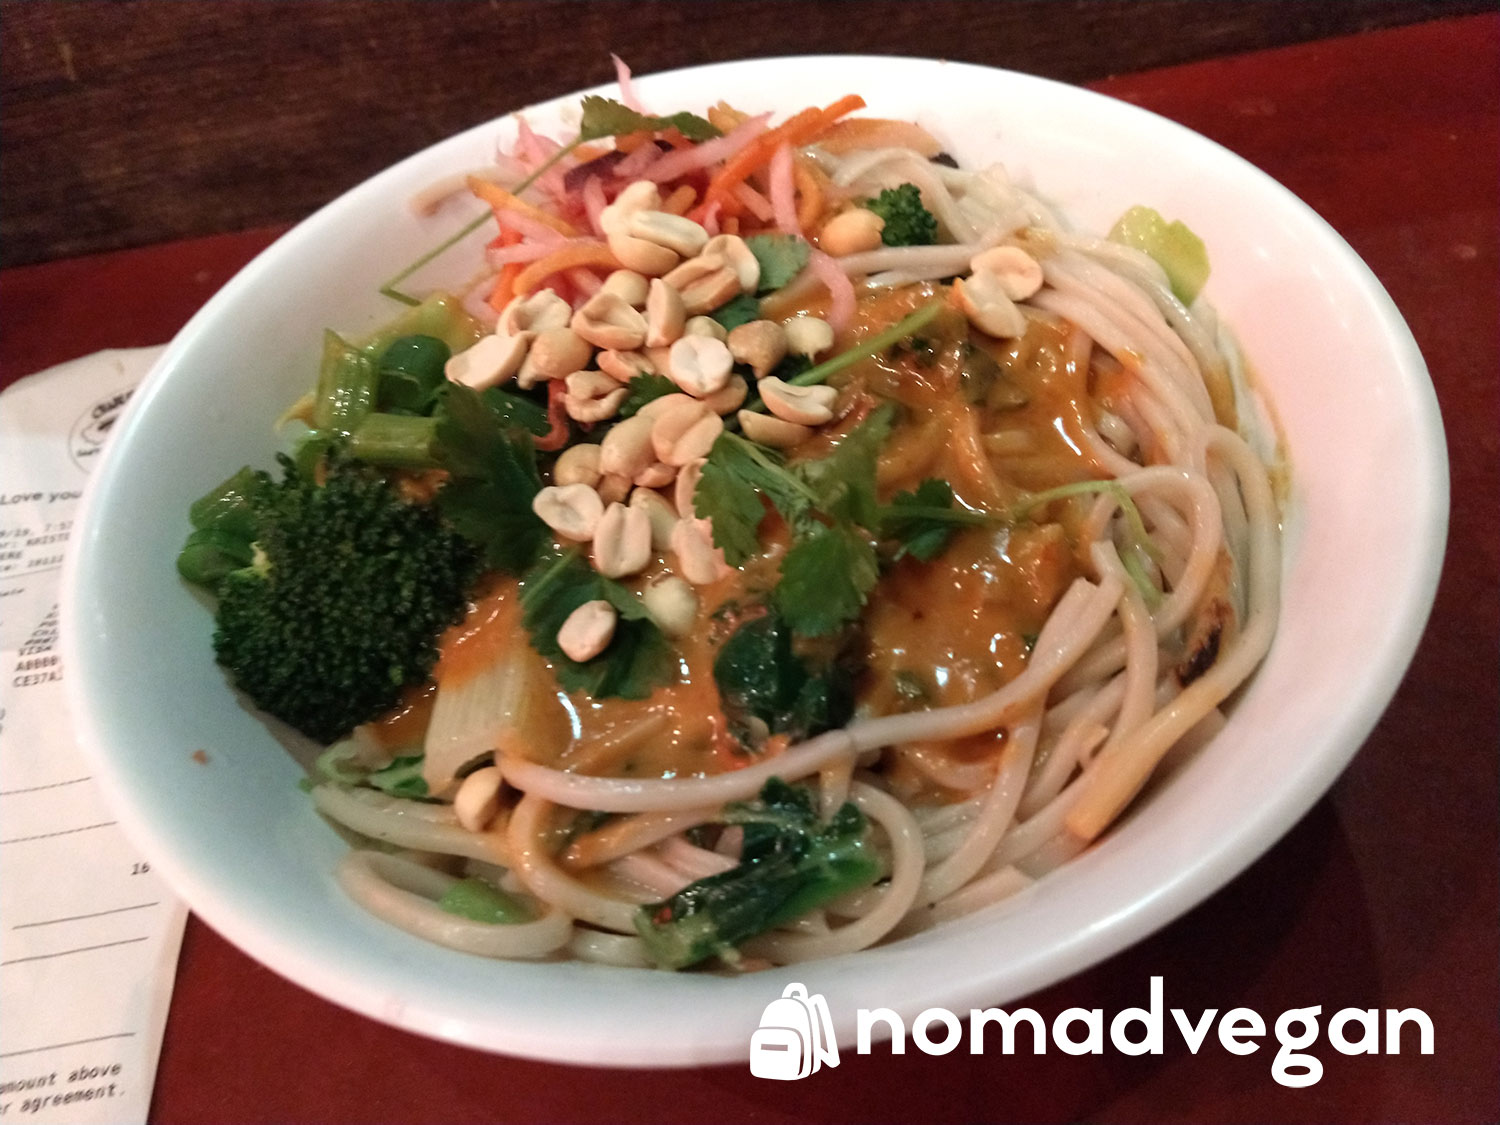 Charlie Hong Kong: Great Tasting Vegan Asian Food in Santa Cruz, California